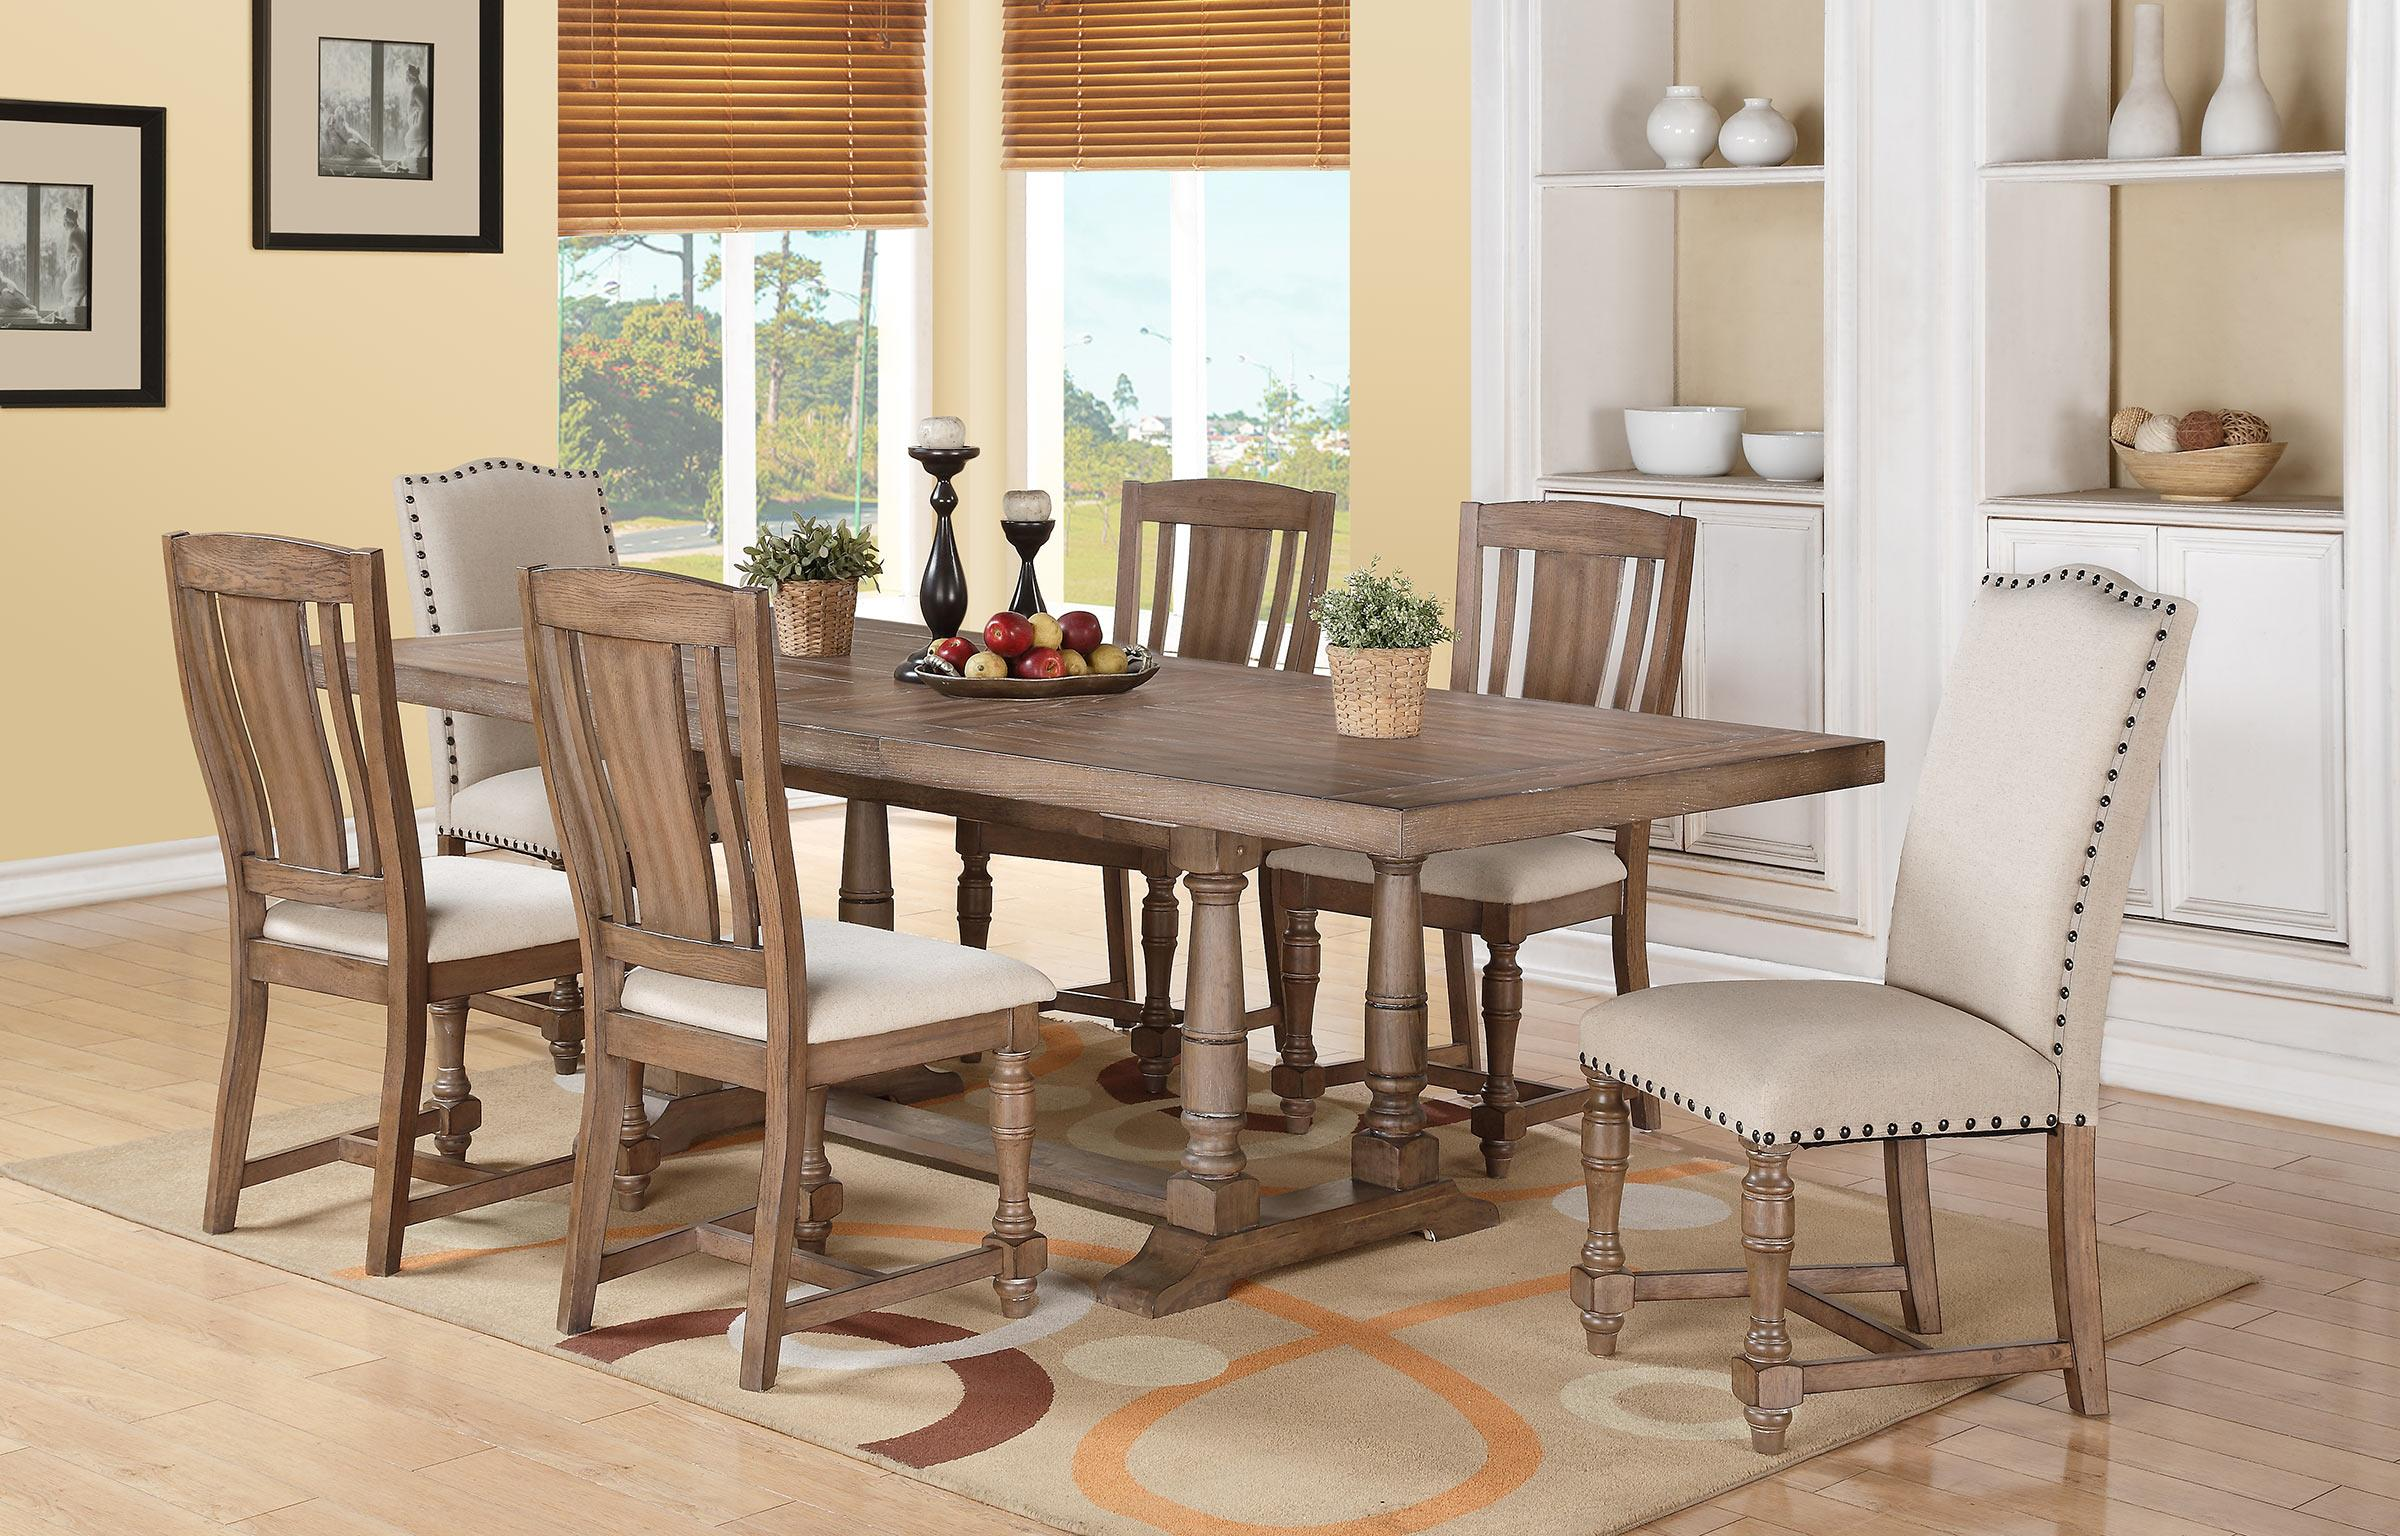 Xcalibur 7 Piece Trestle Table And Upholstered Chair Set   Rotmans   Dining  7 (or More) Piece Set Worcester, Boston, MA, Providence, RI, And New England